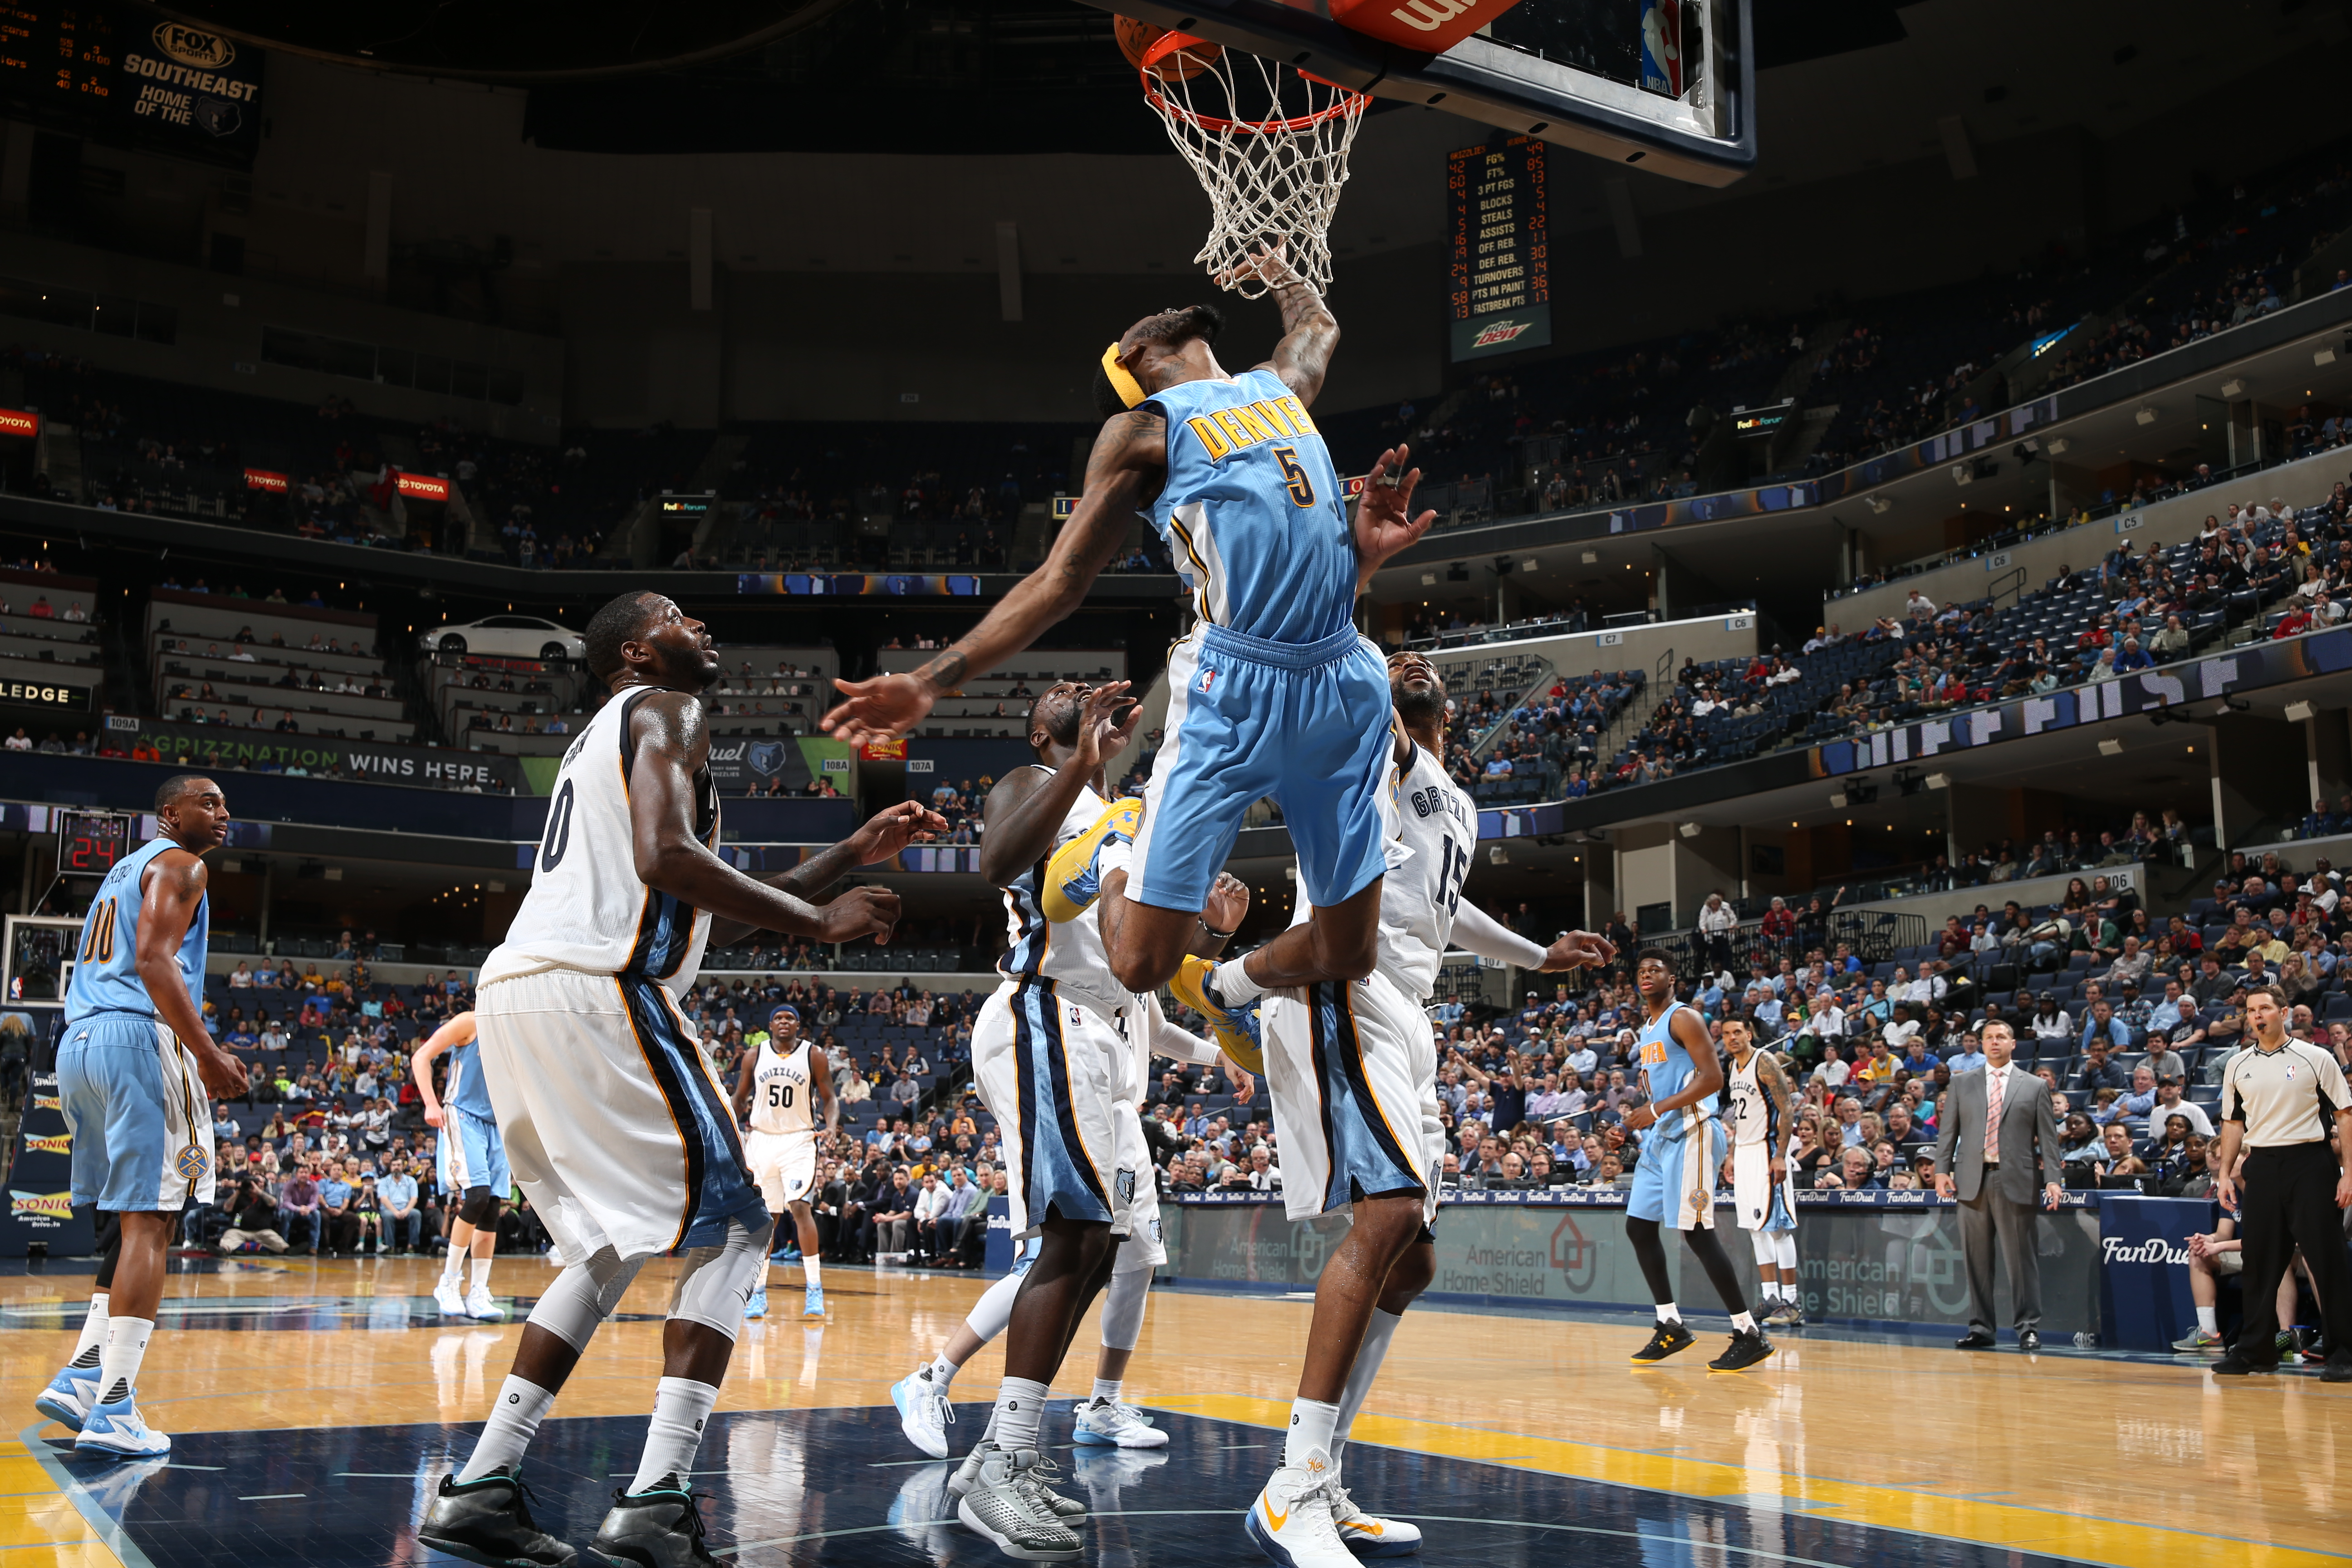 MEMPHIS, TN - MARCH 30:  Will Barton #5 of the Denver Nuggets shoots the ball against the Memphis Grizzlies on March 30, 2016 at FedExForum in Memphis, Tennessee. (Photo by Joe Murphy/NBAE via Getty Images)